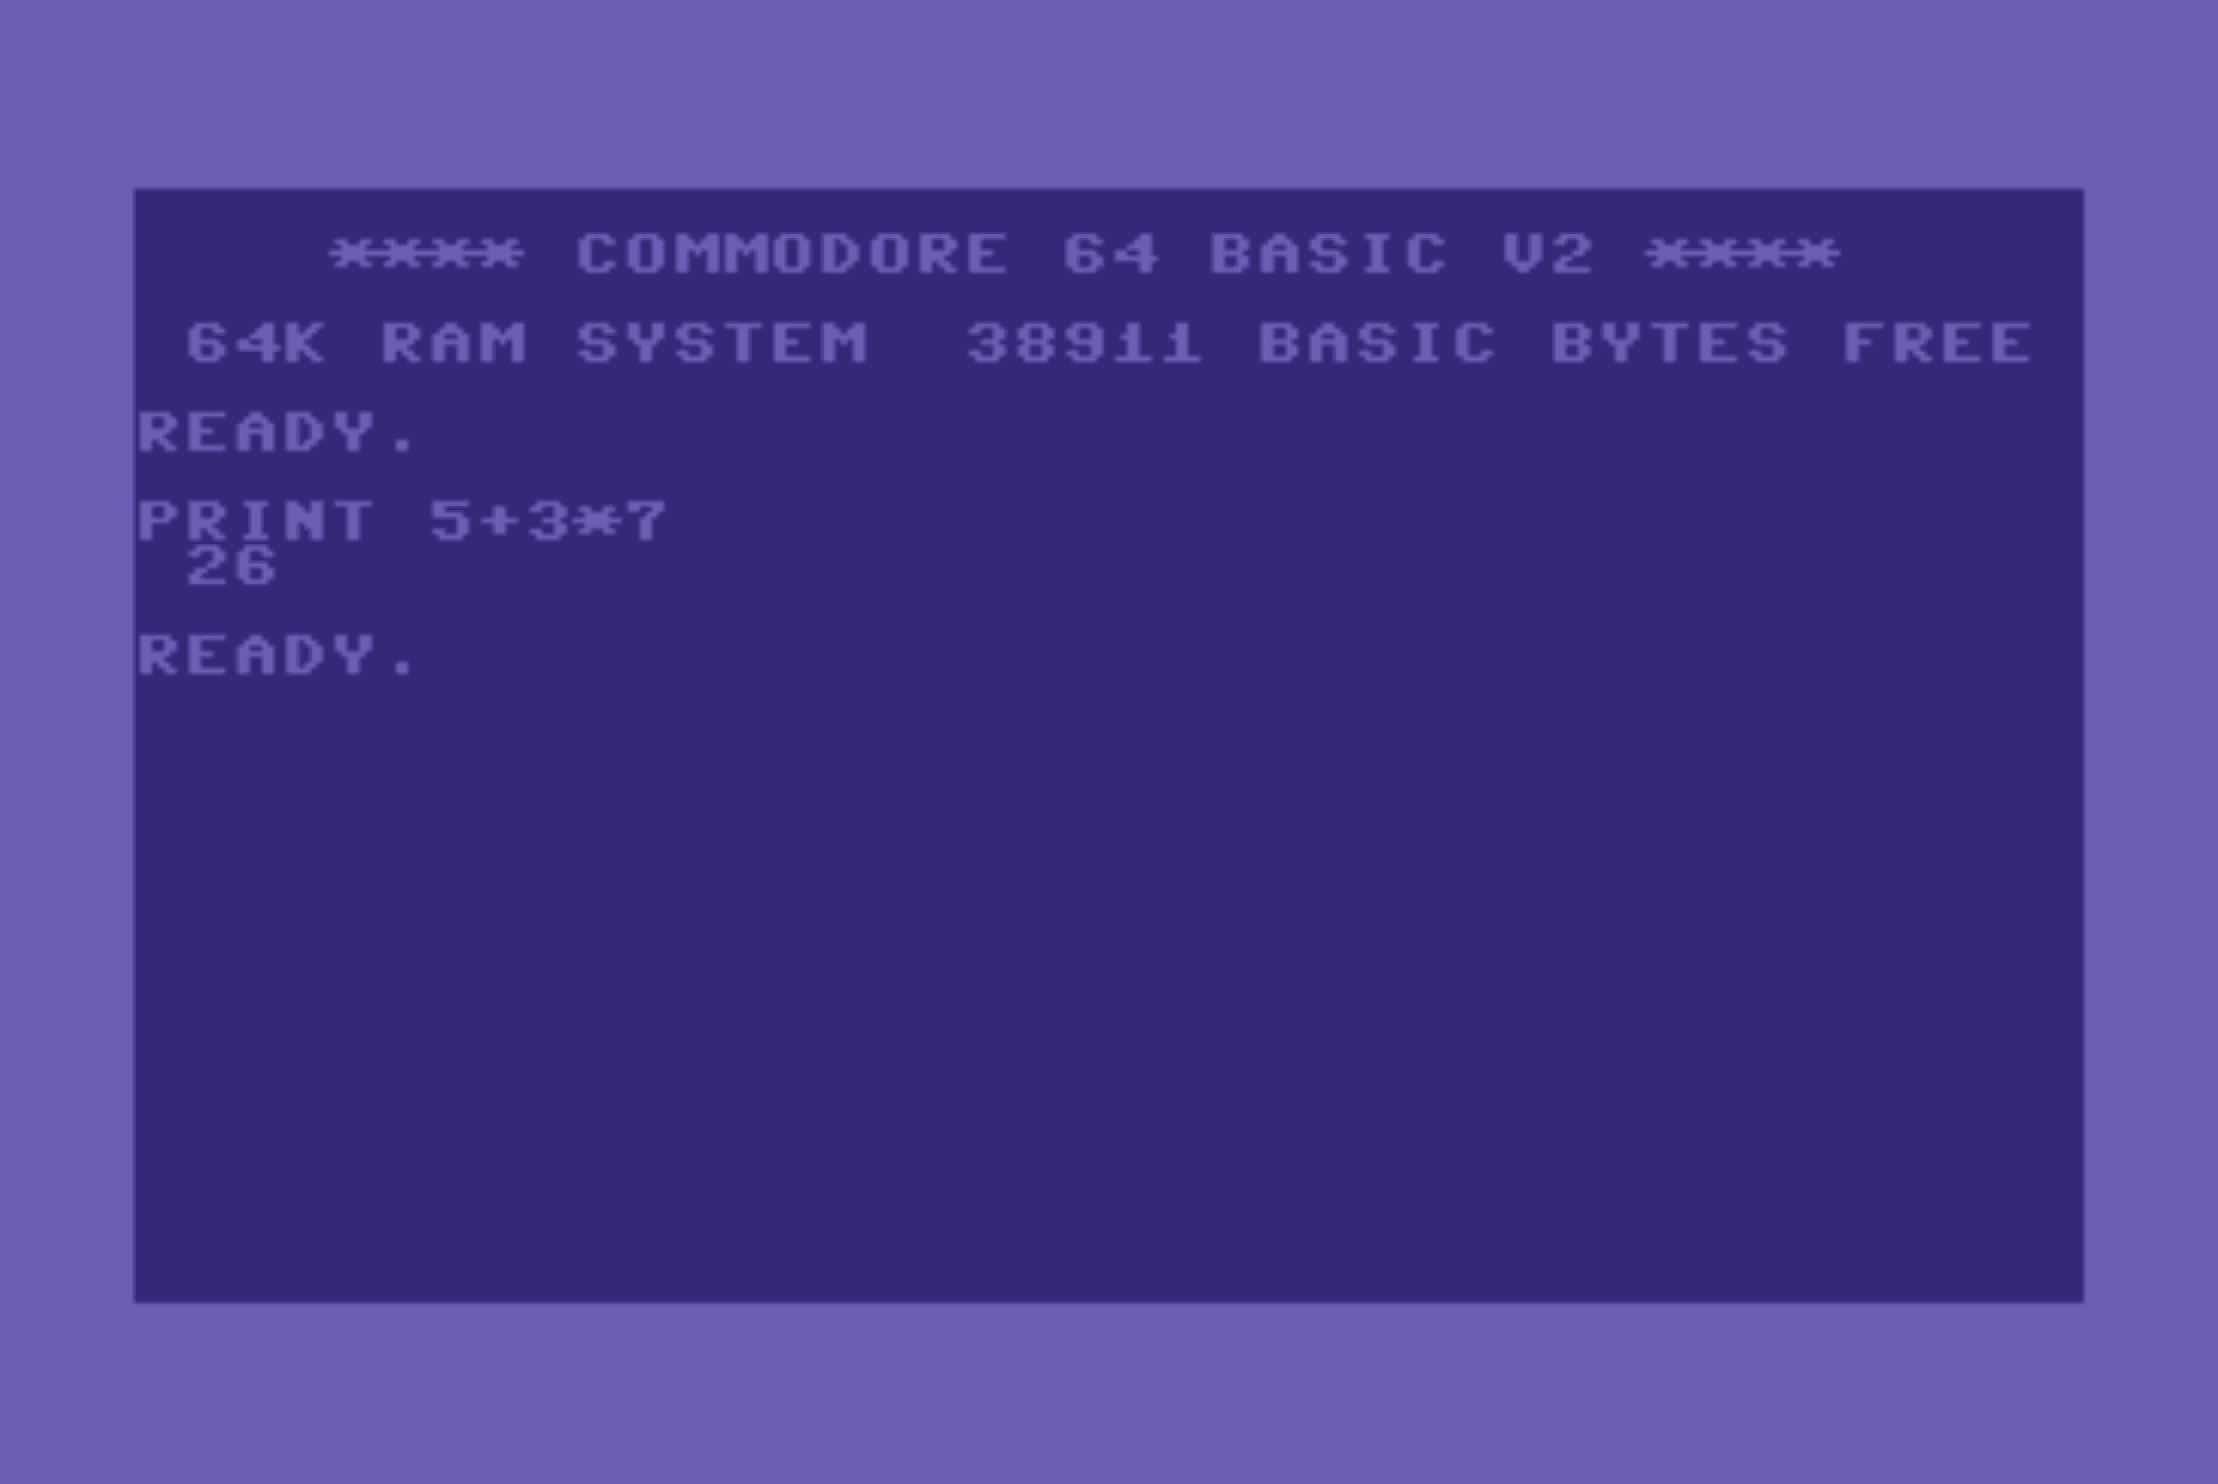 A C64 starts directly with BASIC